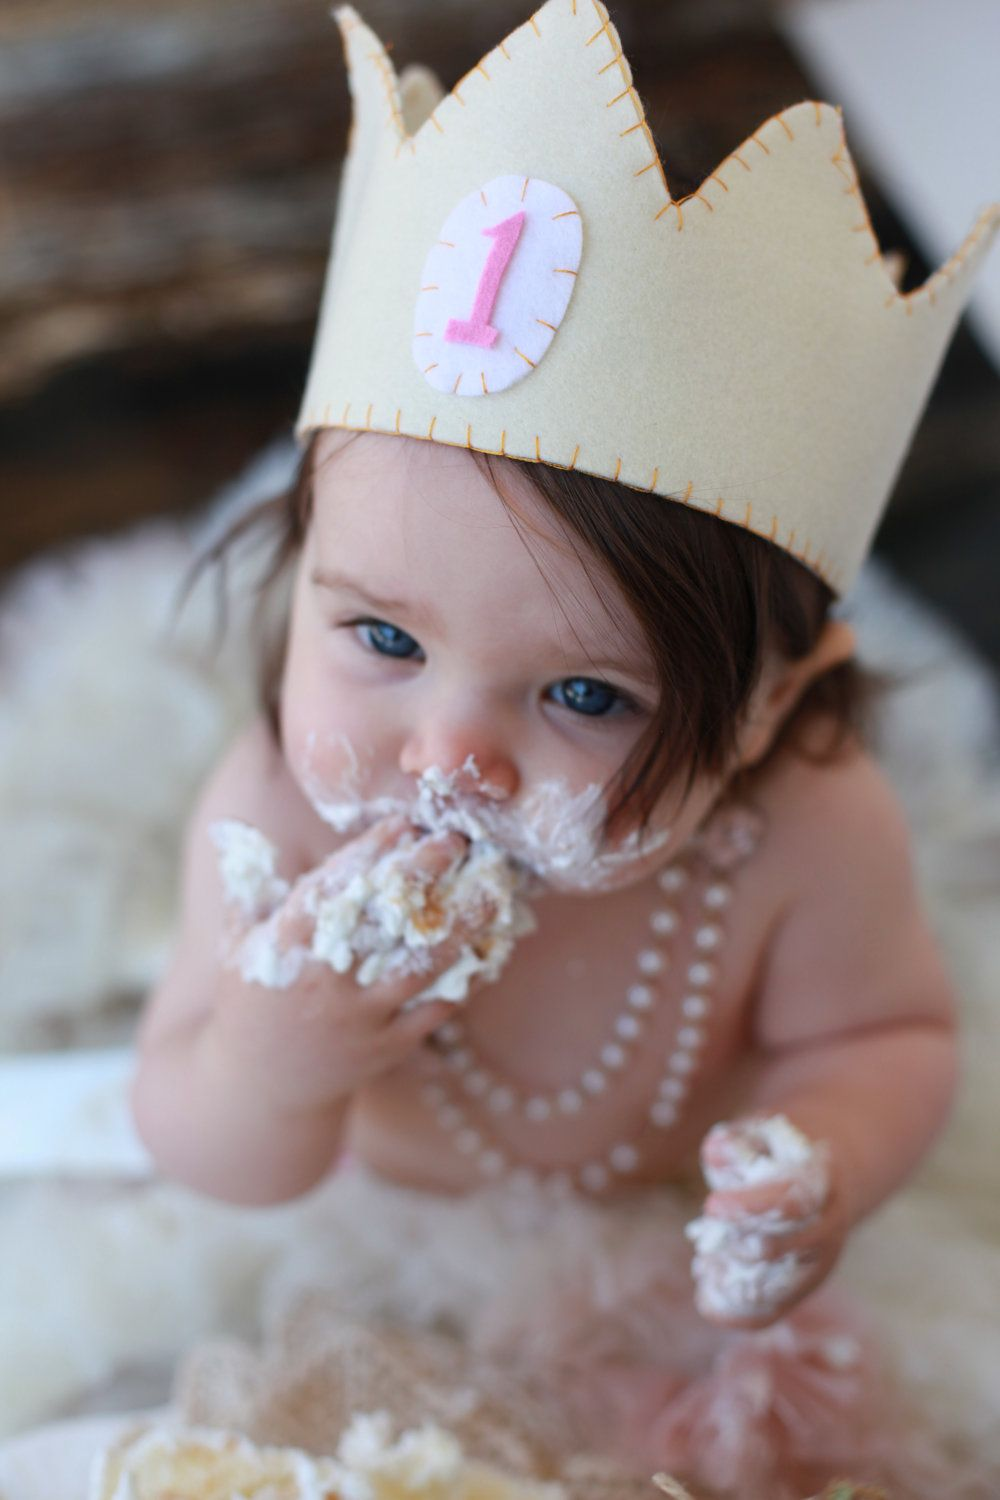 First birthday. So cute! This is my favorite-est picture of a little girl that ive seen. I hope to have a baby girl with those eyes